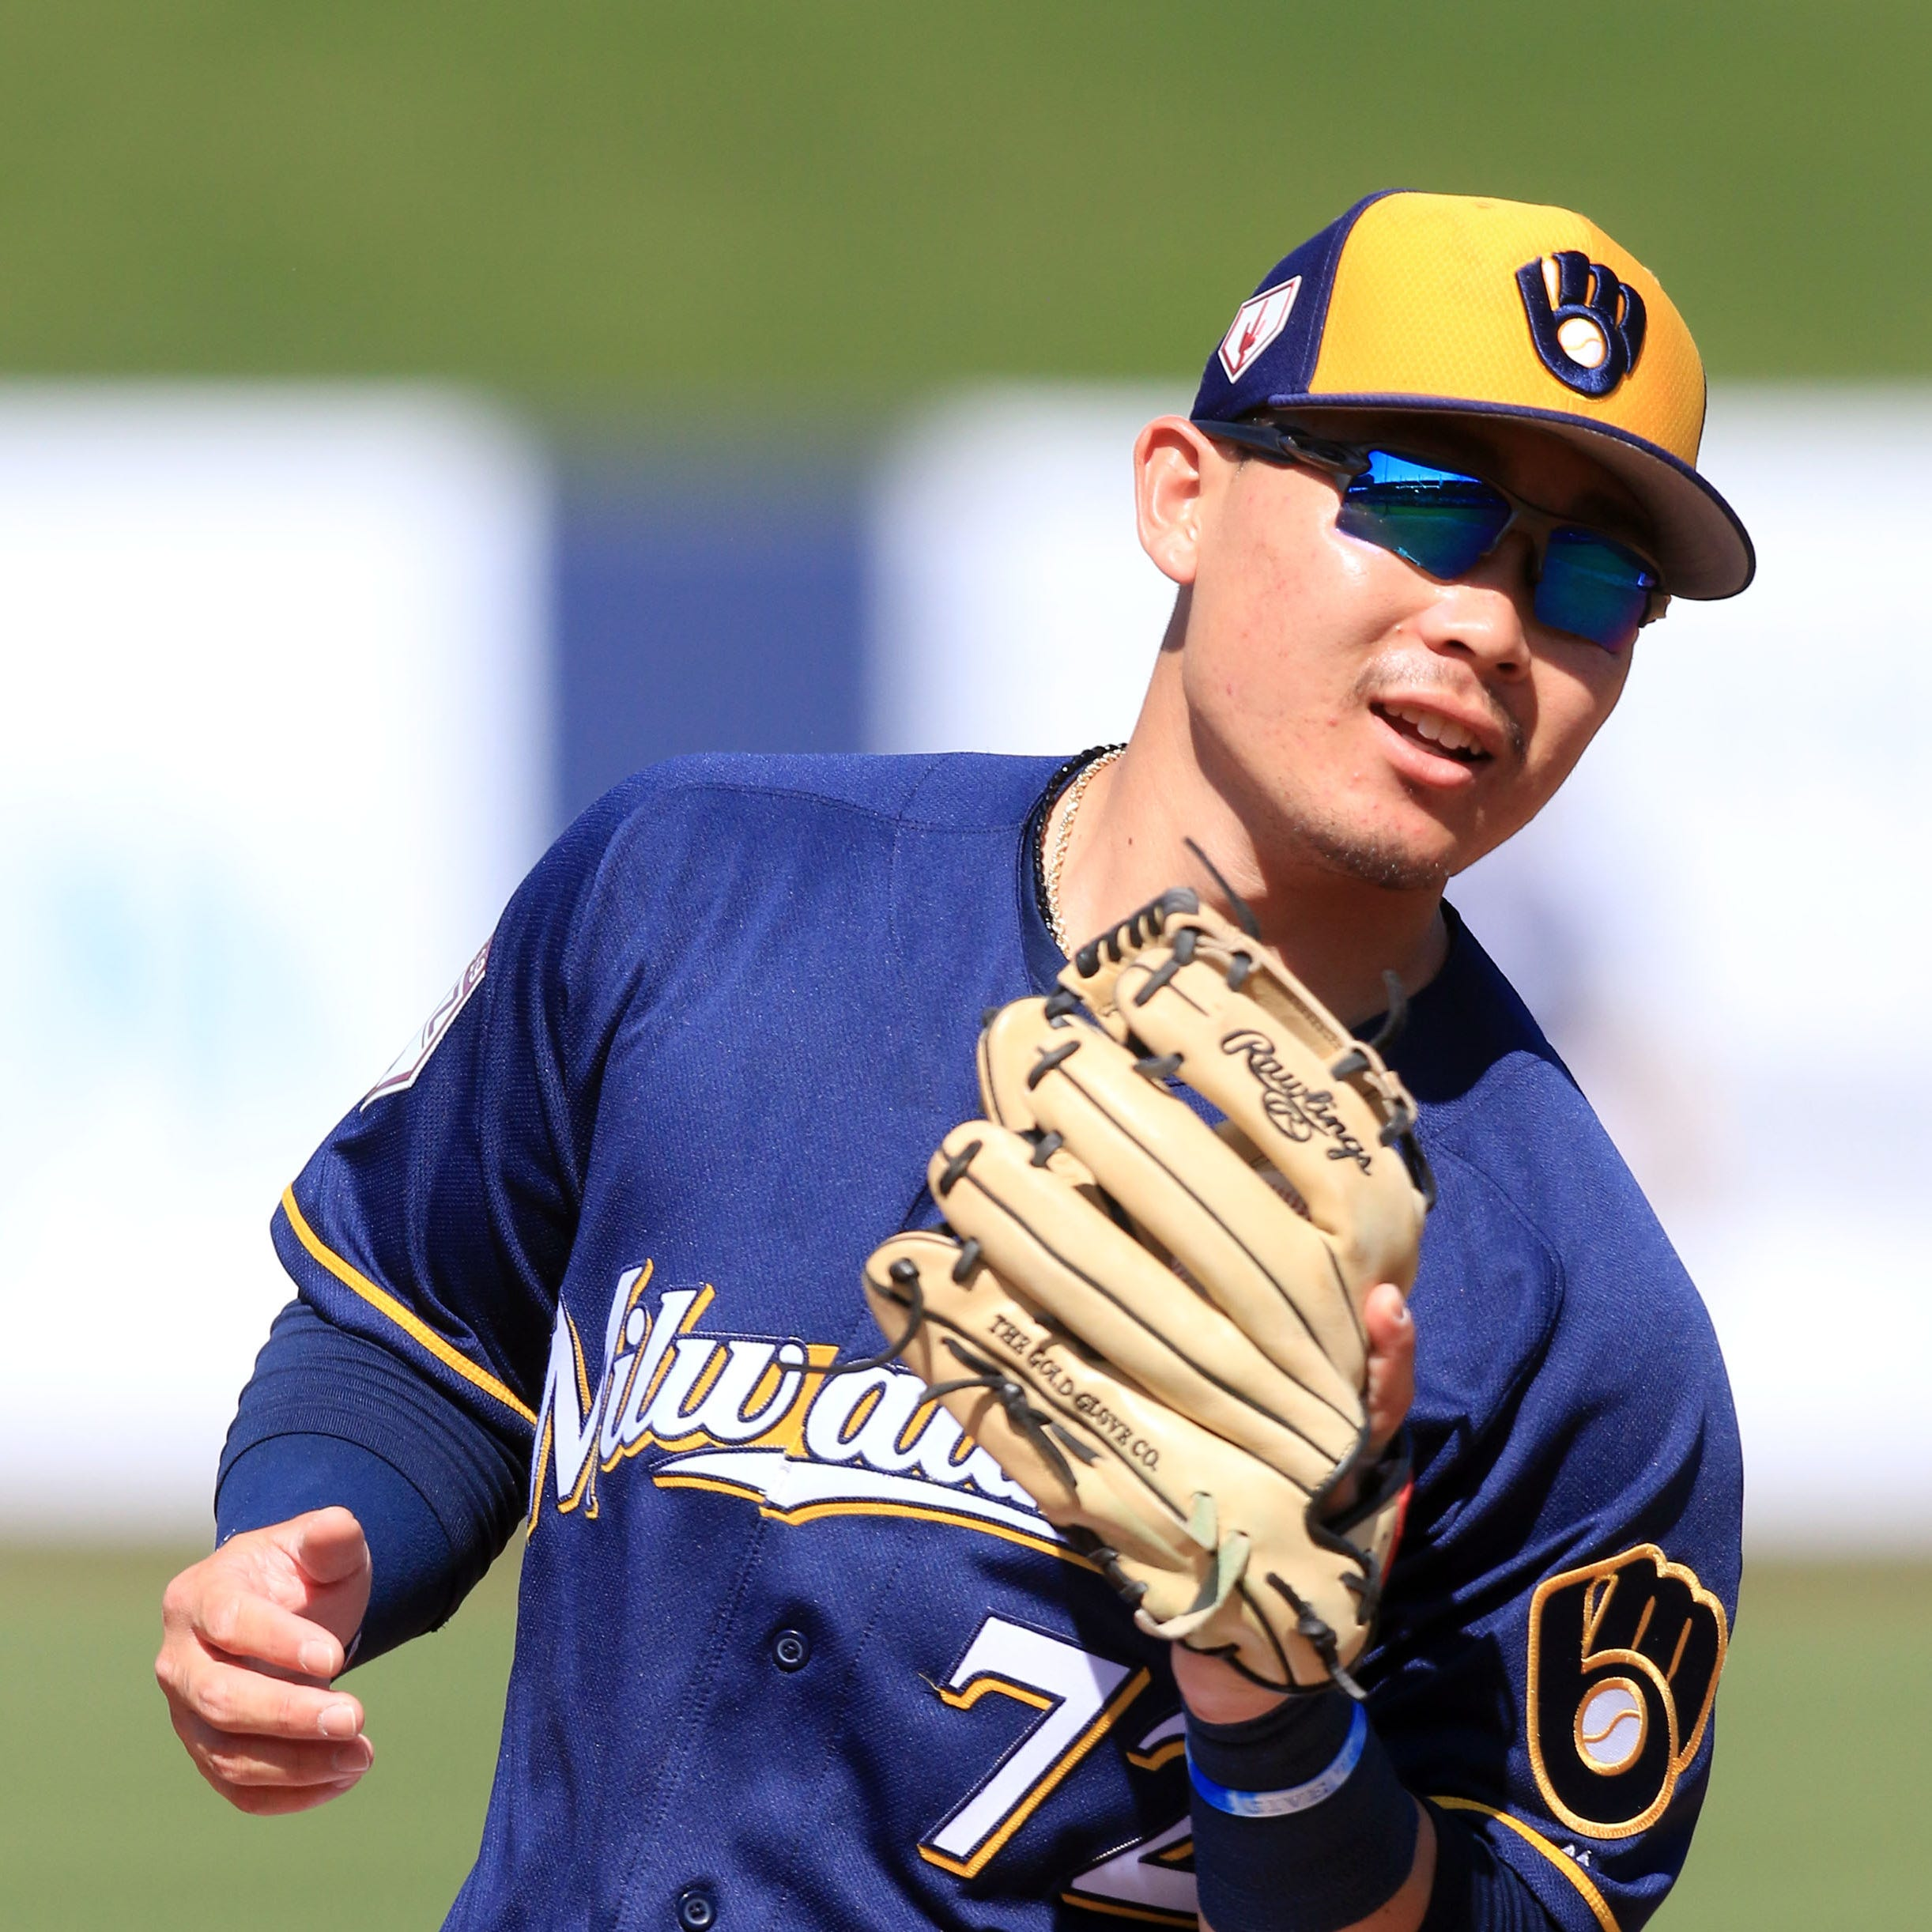 Brewers top prospect Keston Hiura remains focused on the process this spring